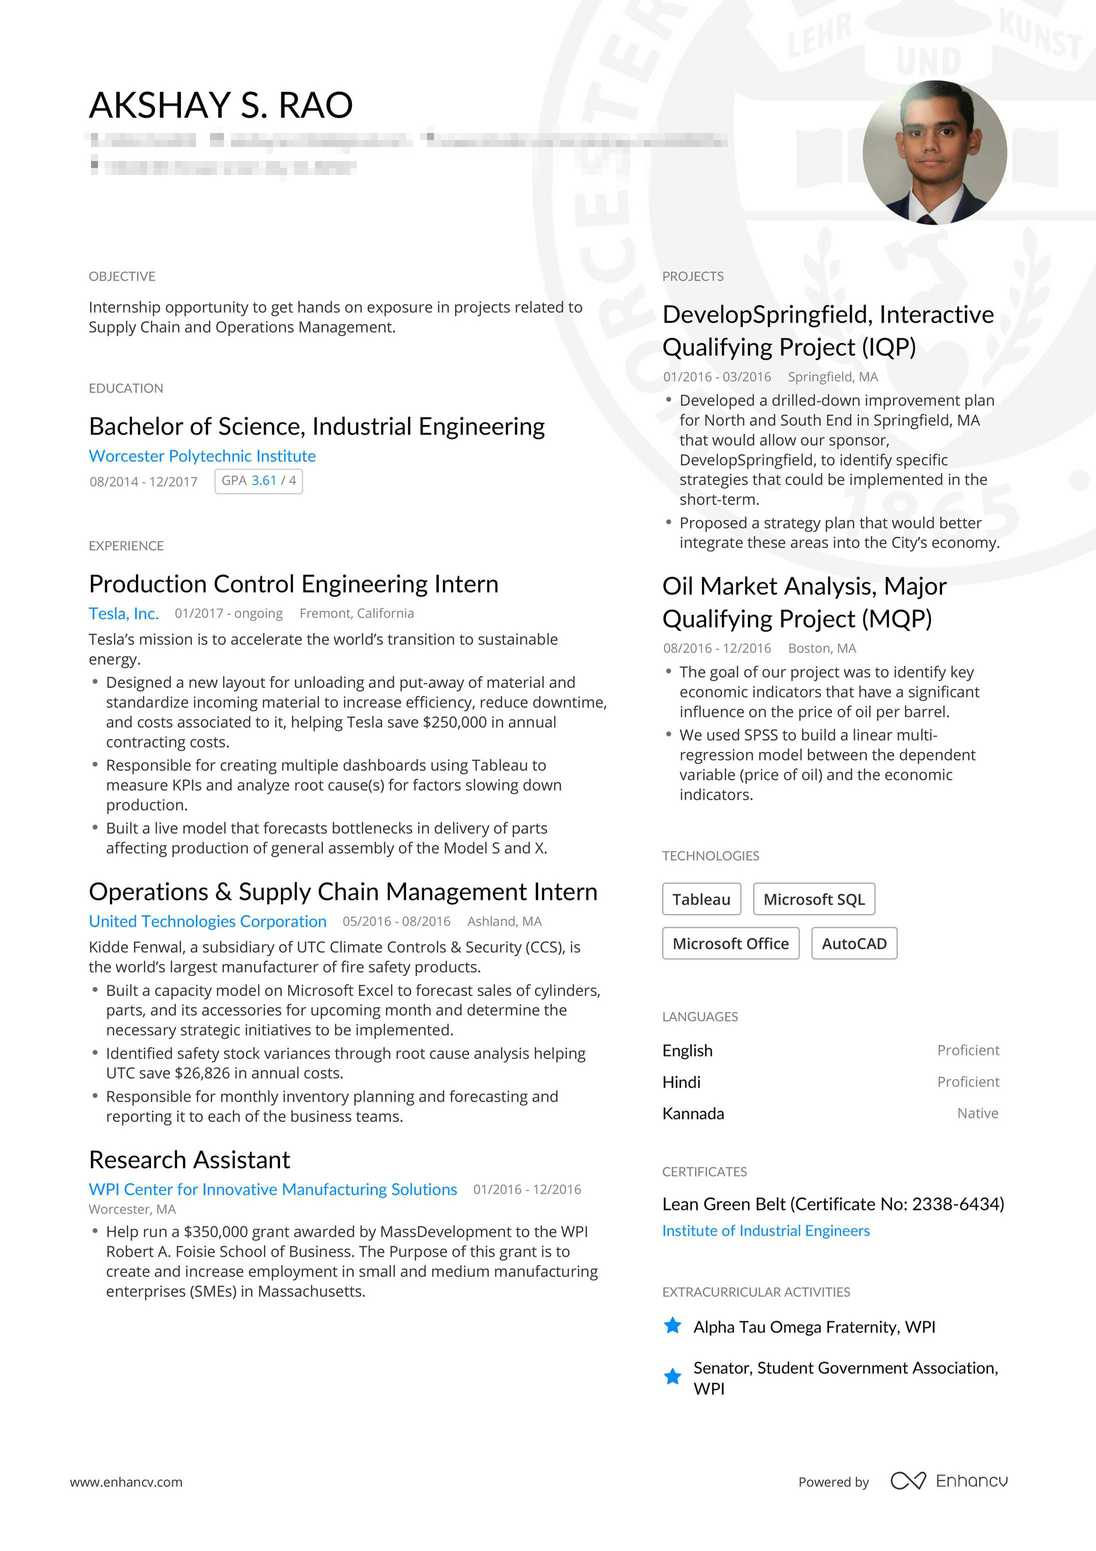 Real College Graduate Resume Example | Enhancv